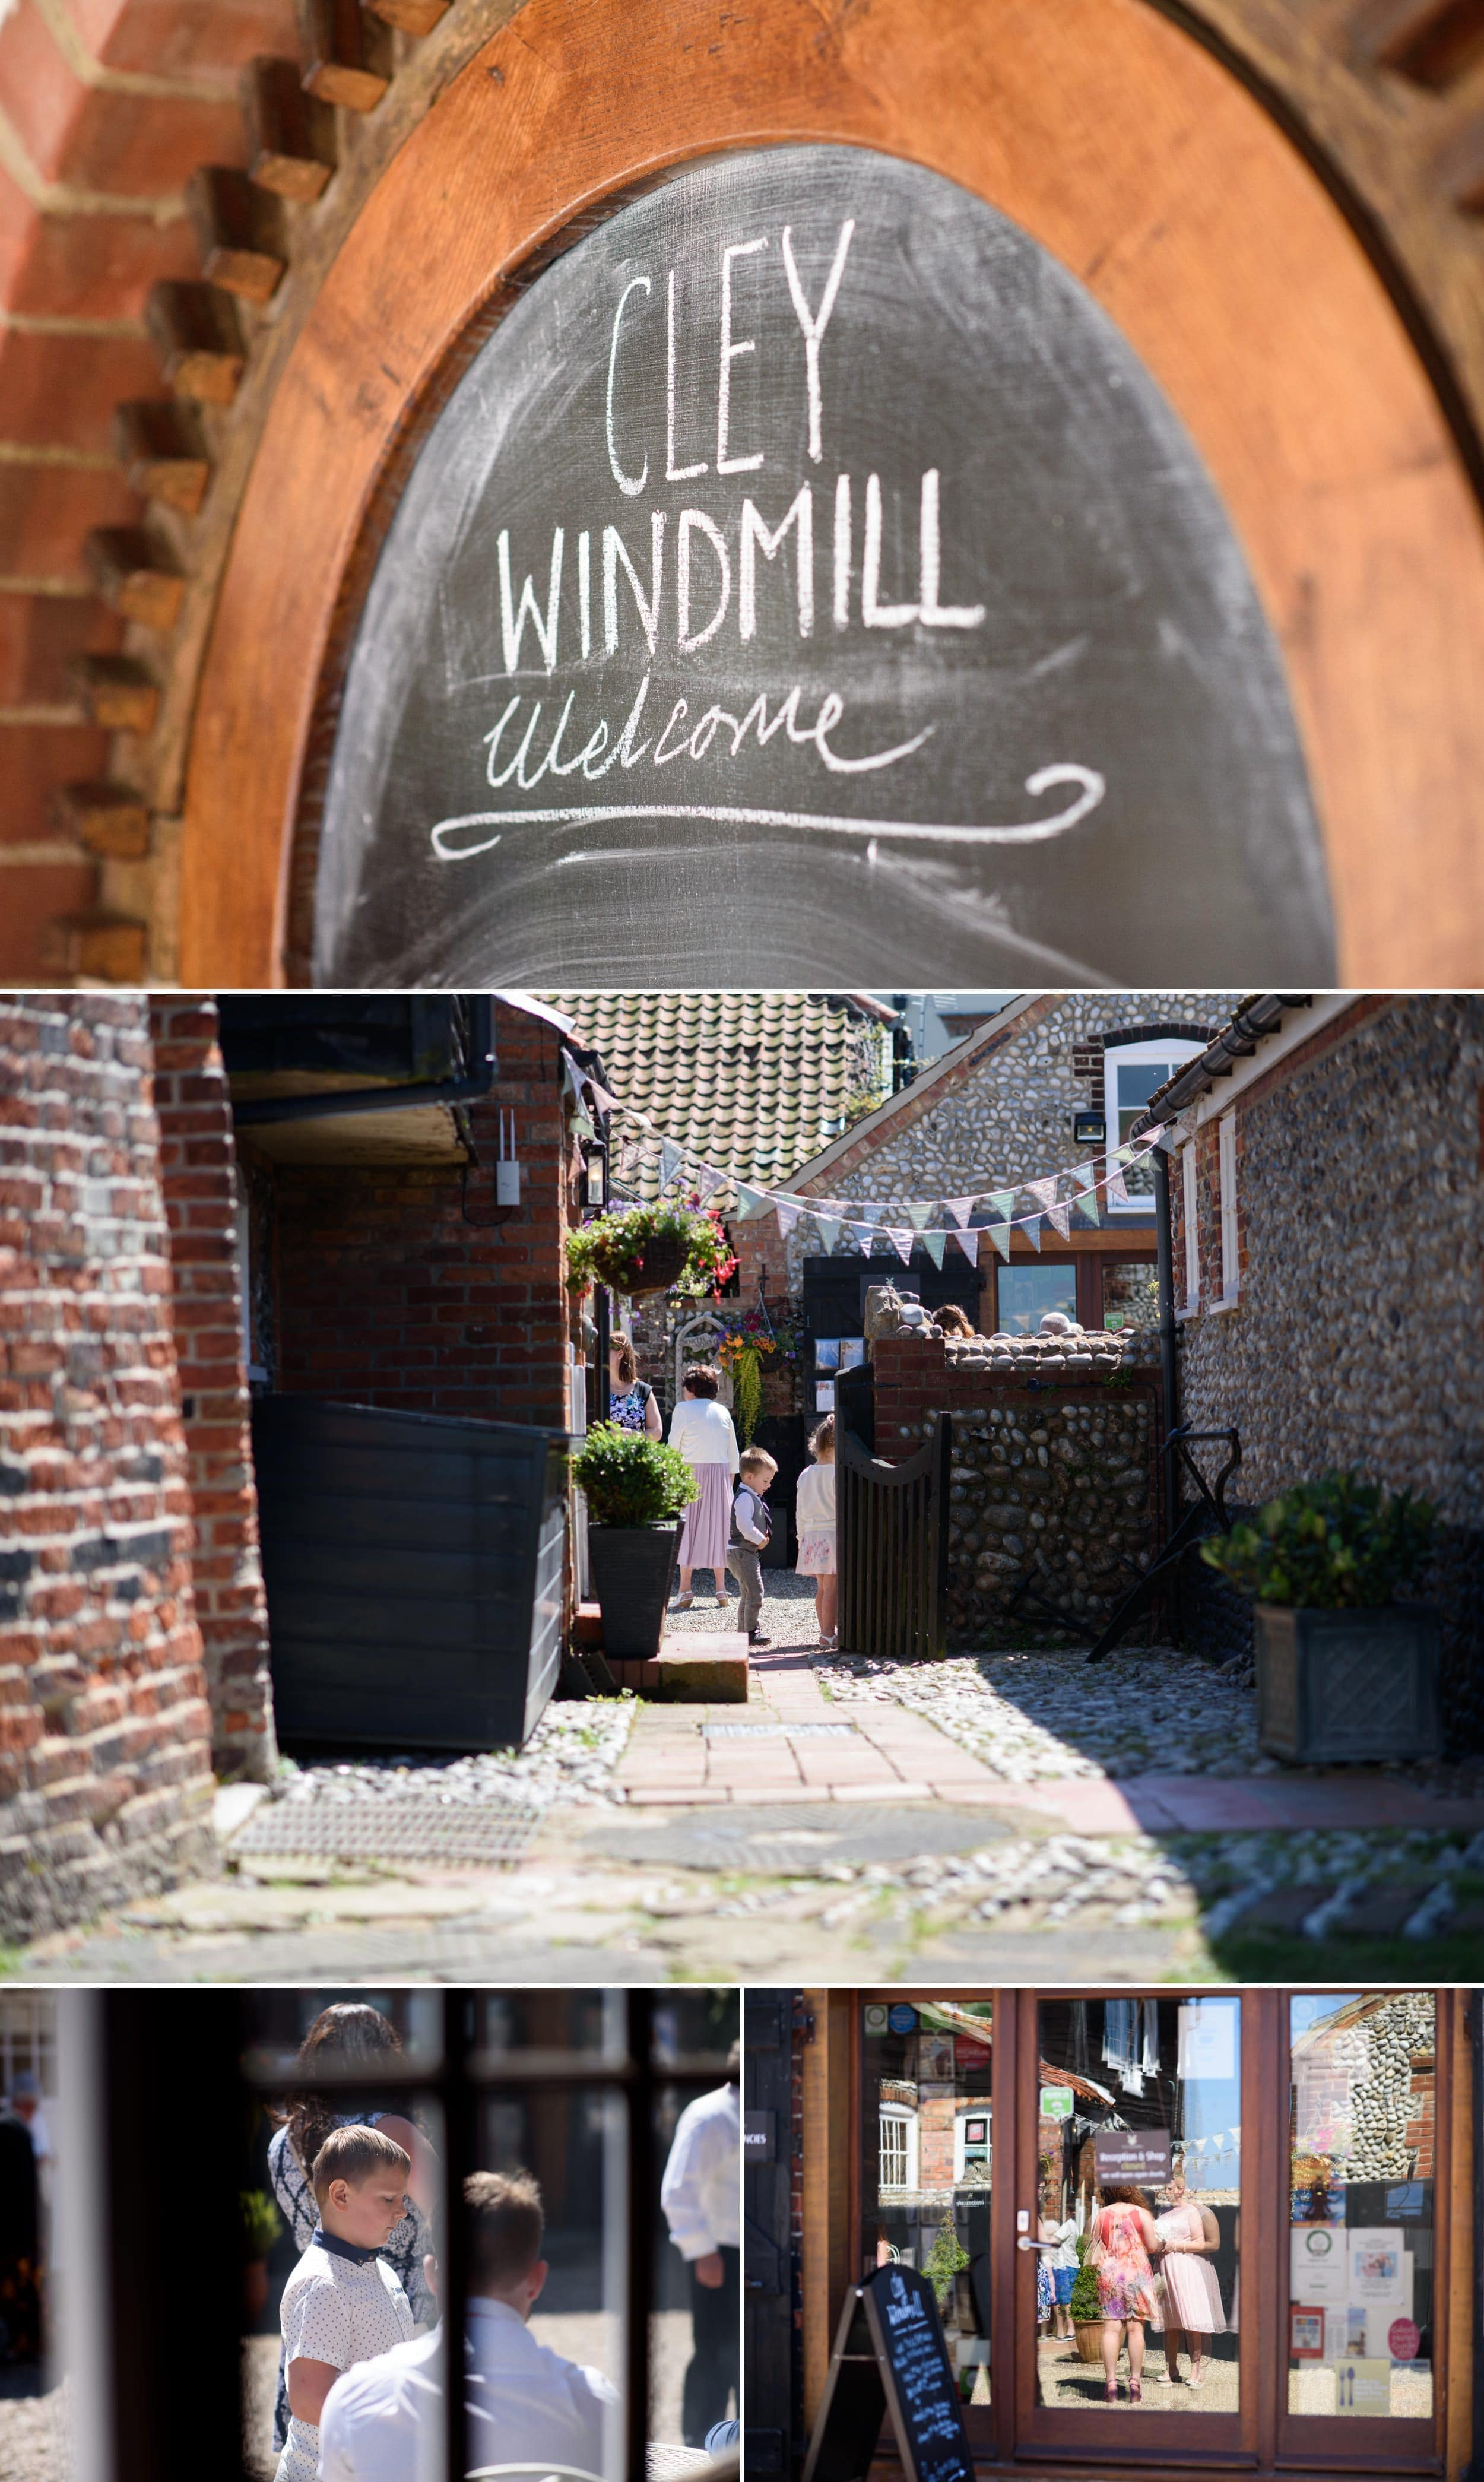 cley_windmill_norfolk_wedding_photography-3